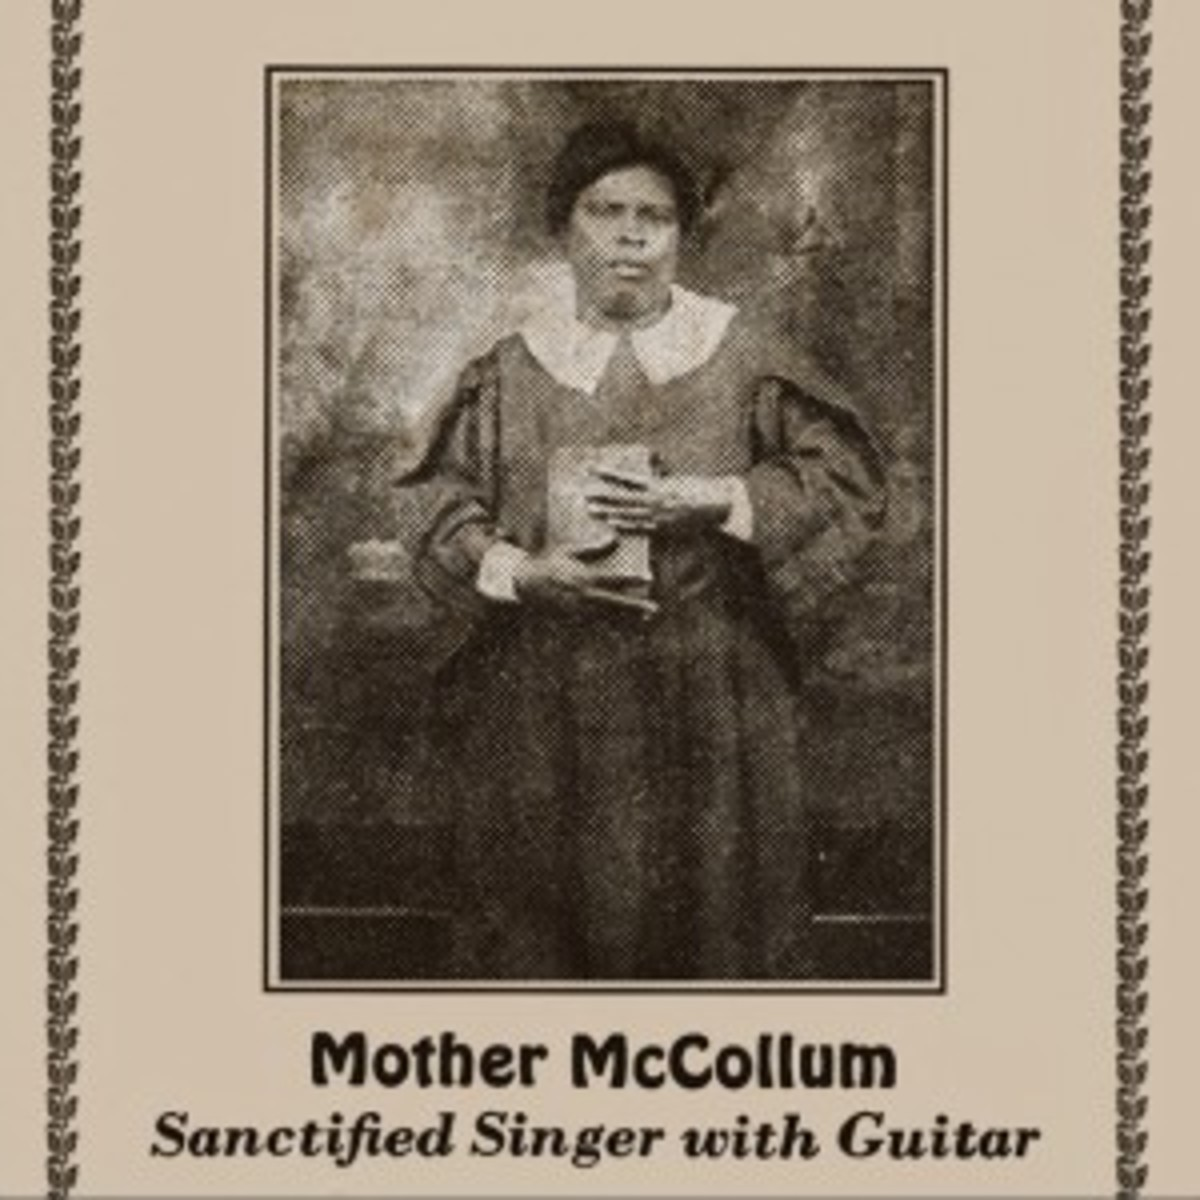 Mother McCollum photo courtesy of Blues Images